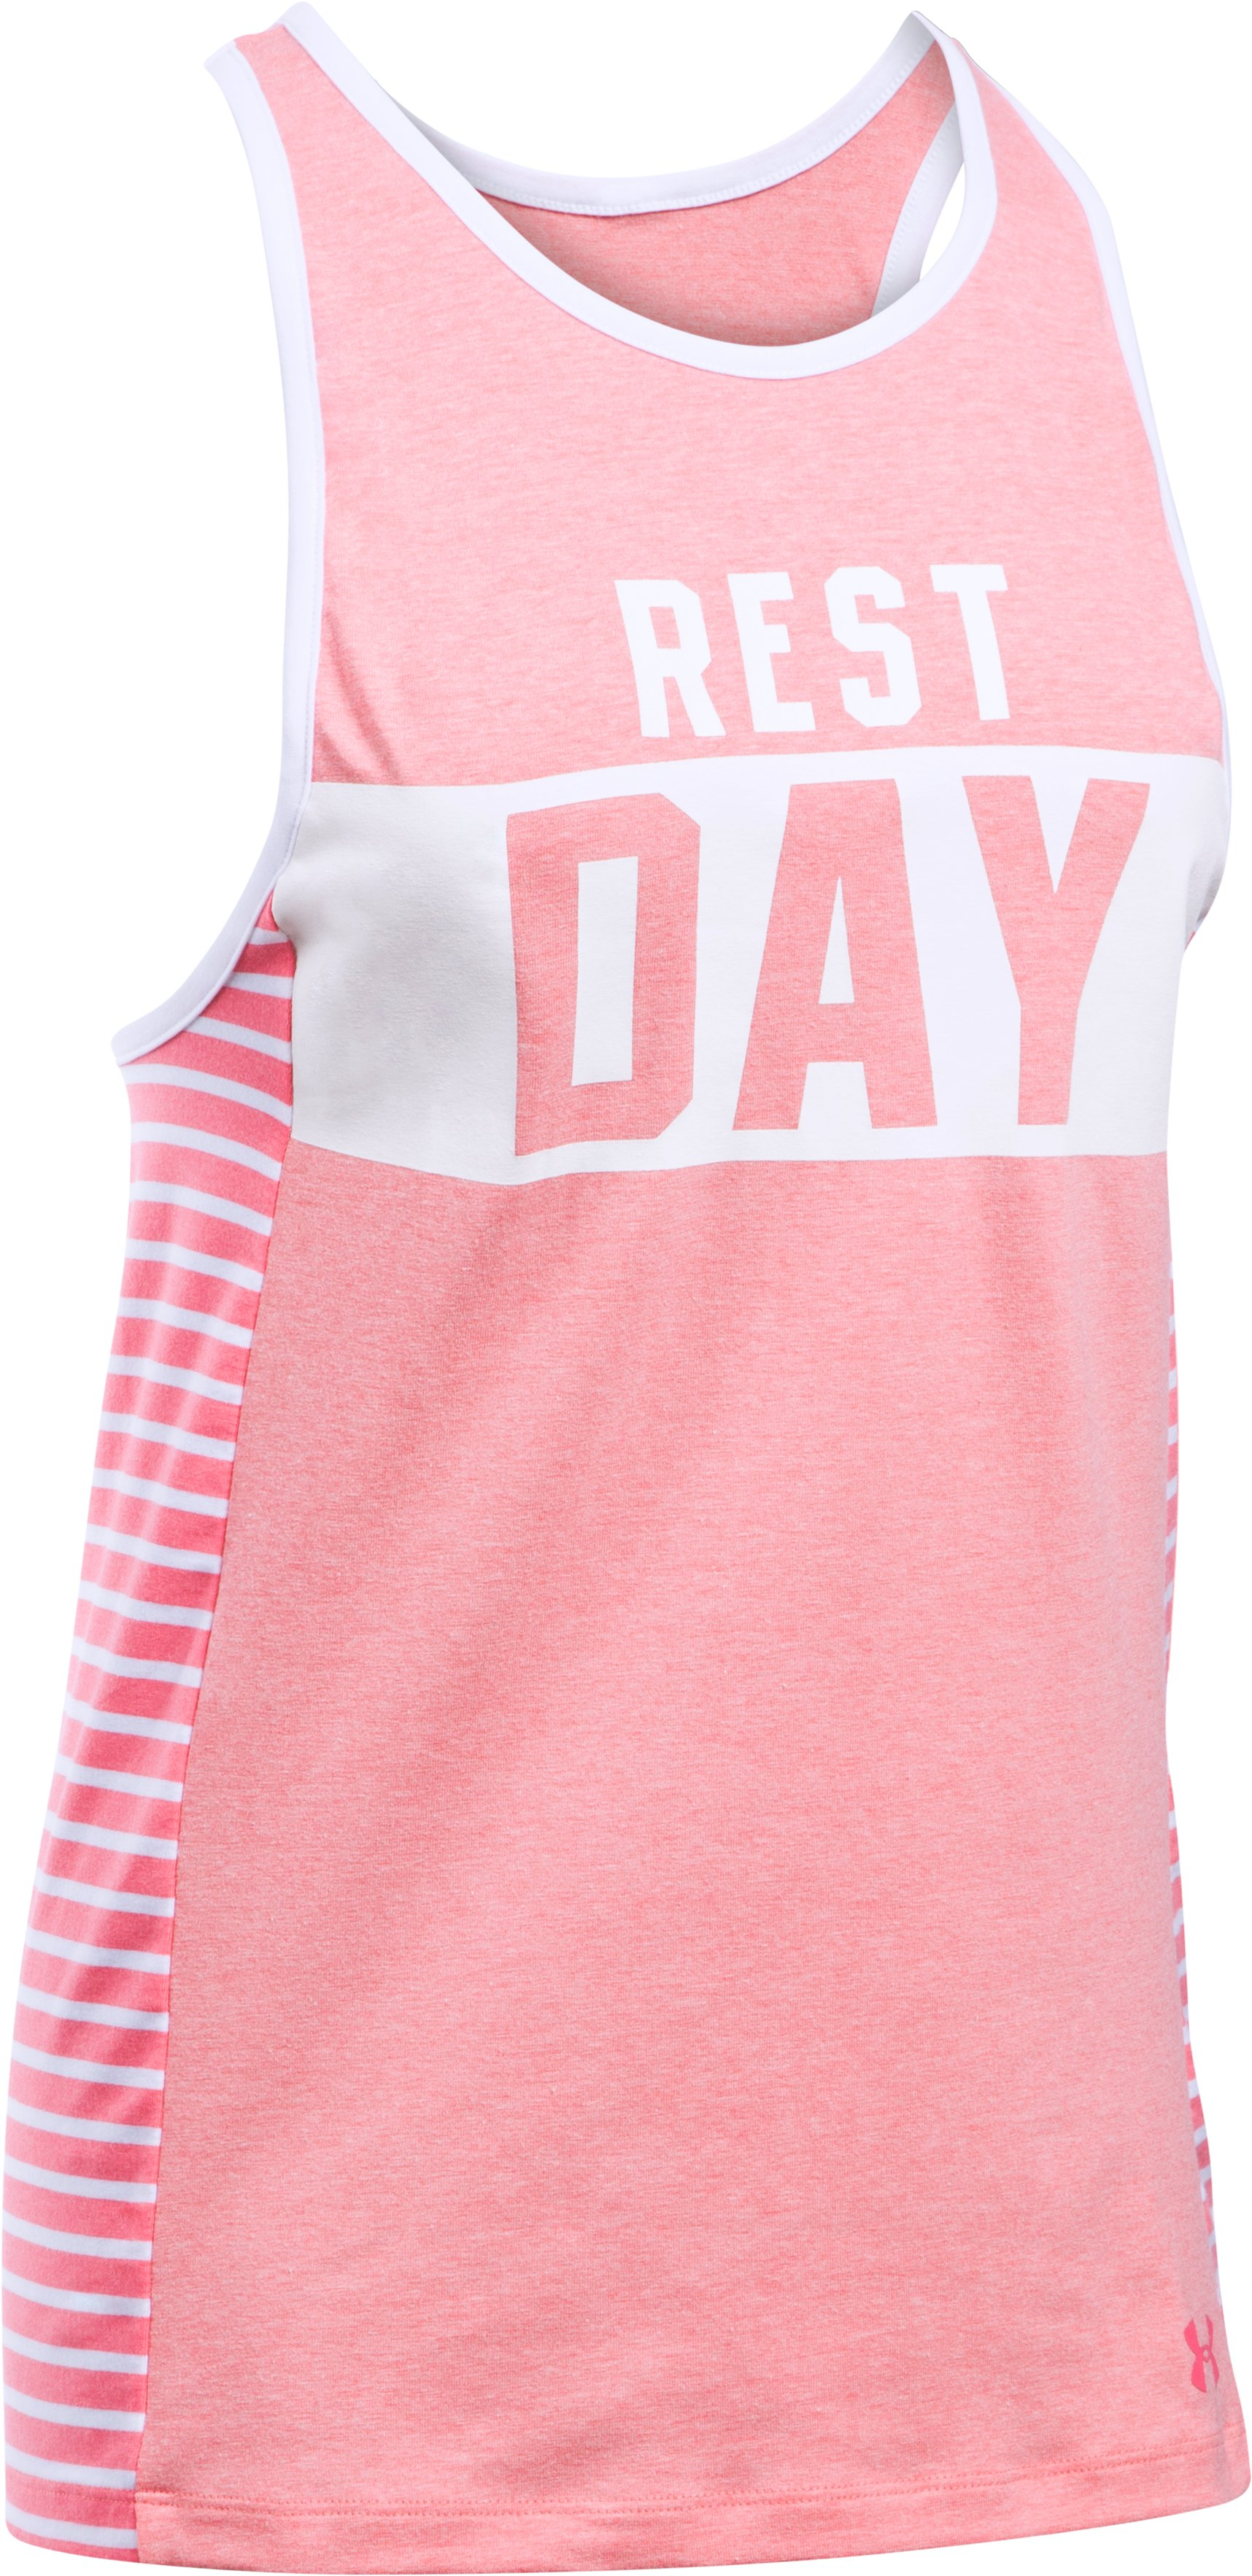 Women's UA Rest Day Graphic Tank, PERFECTION LIGHT HEATHER,